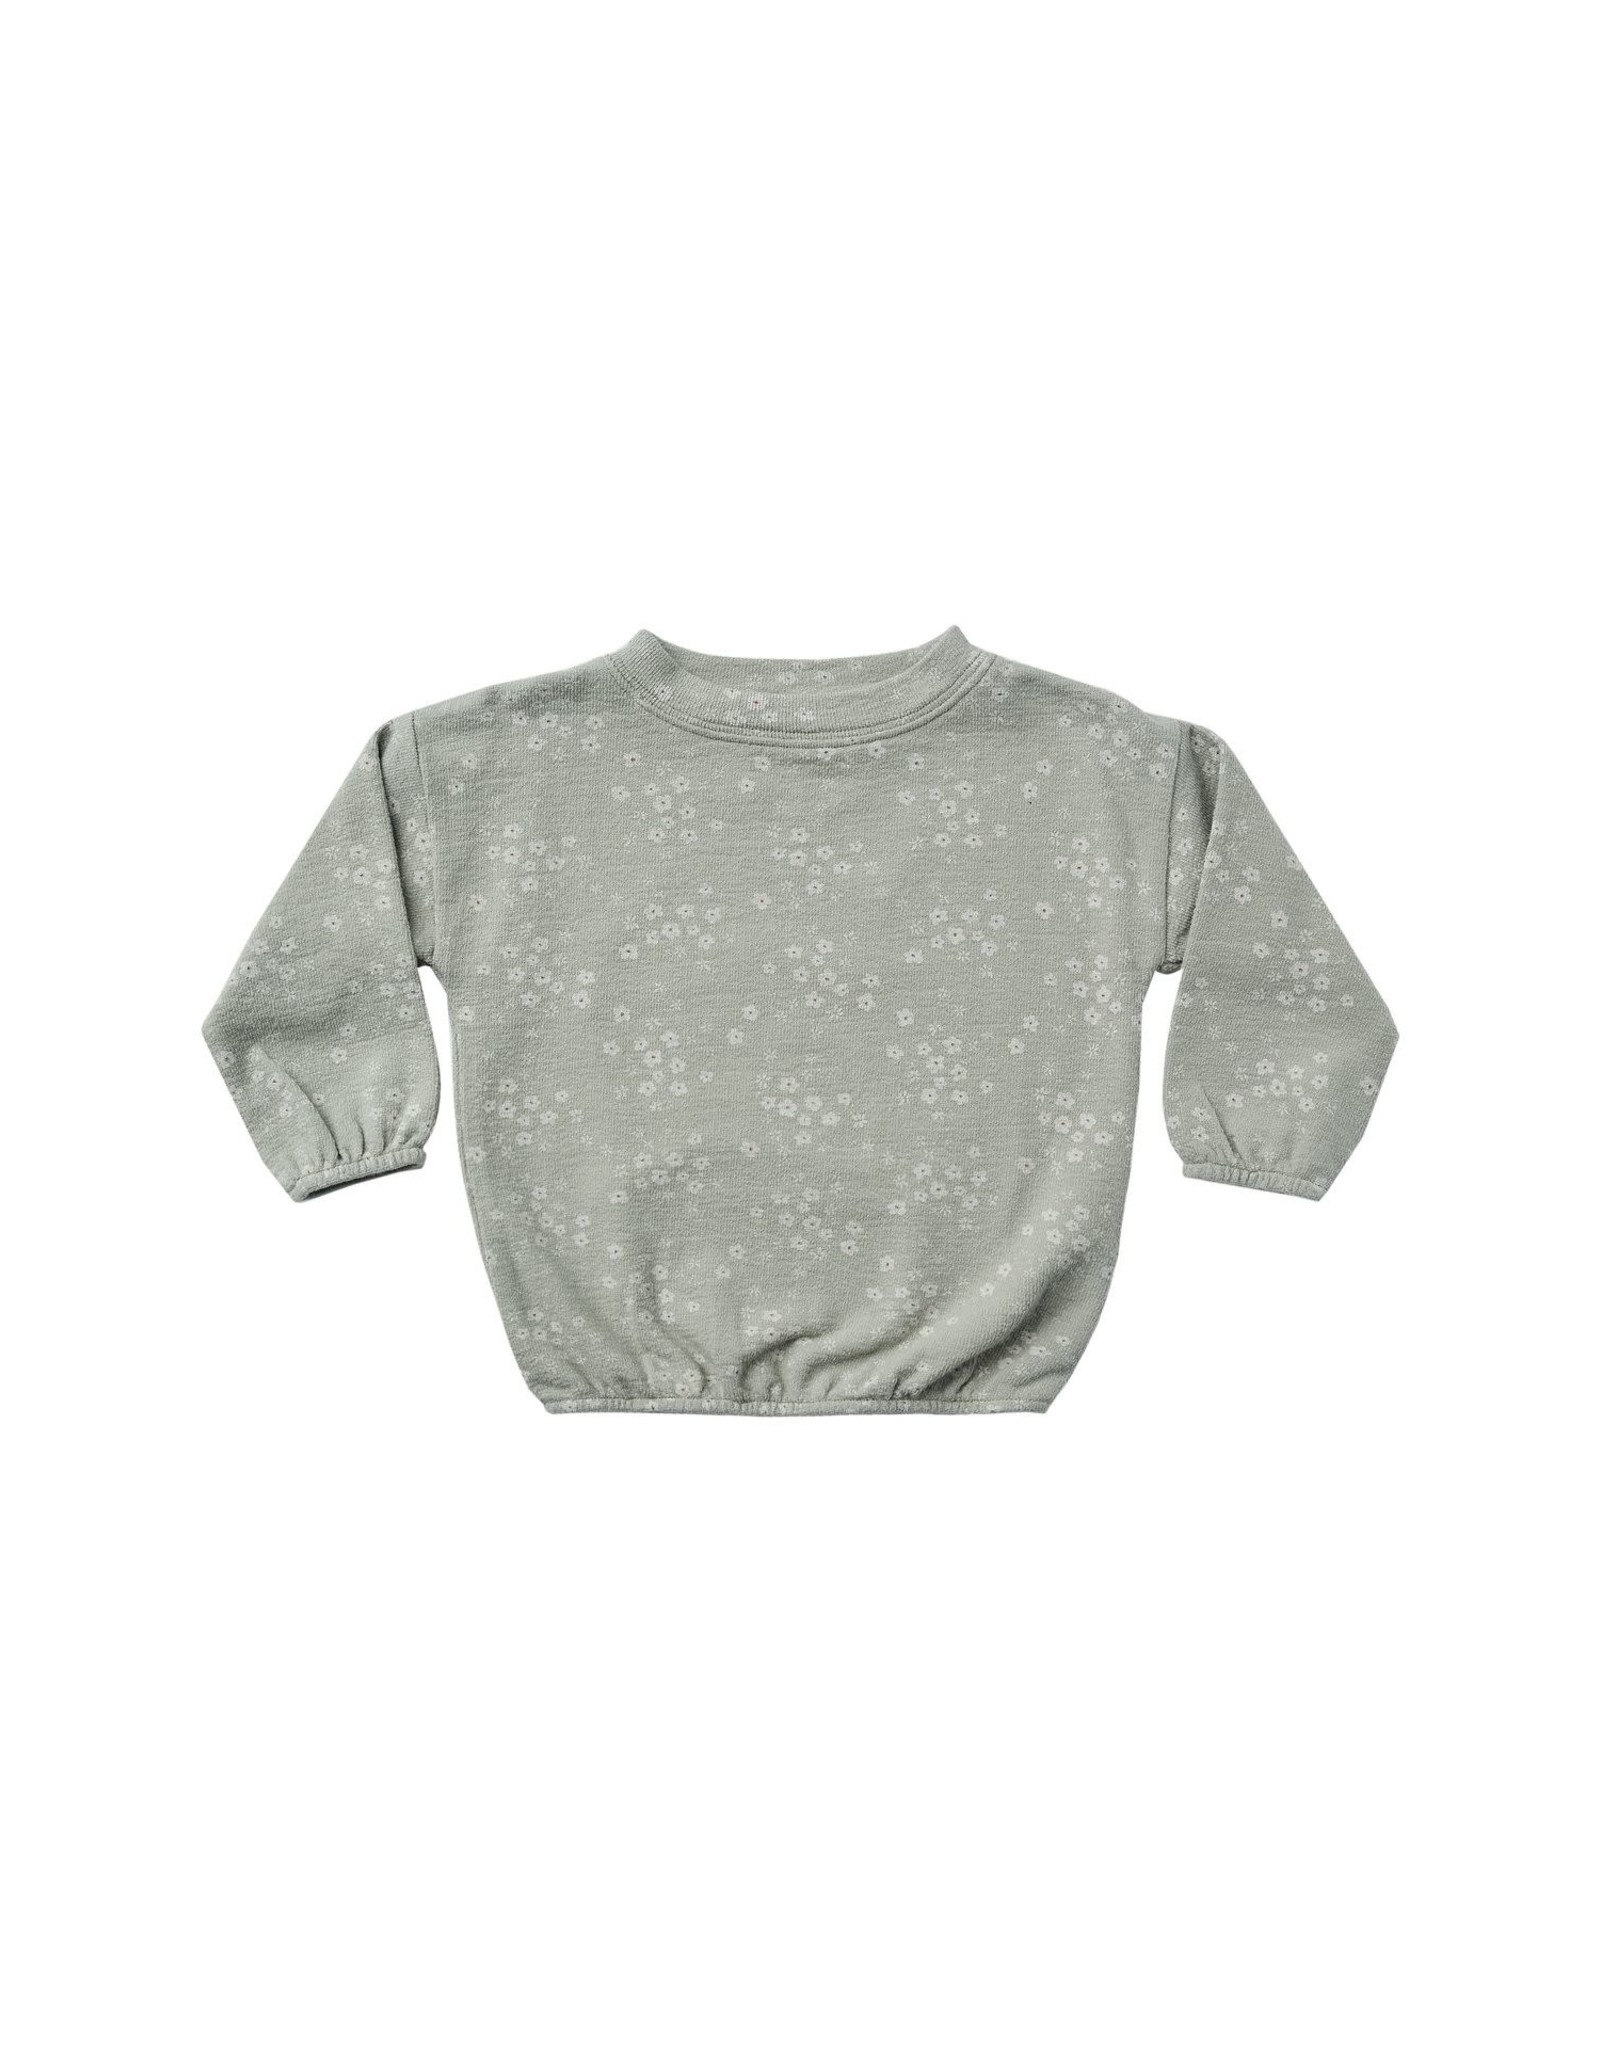 Rylee and Cru slouchy pullover- meadow